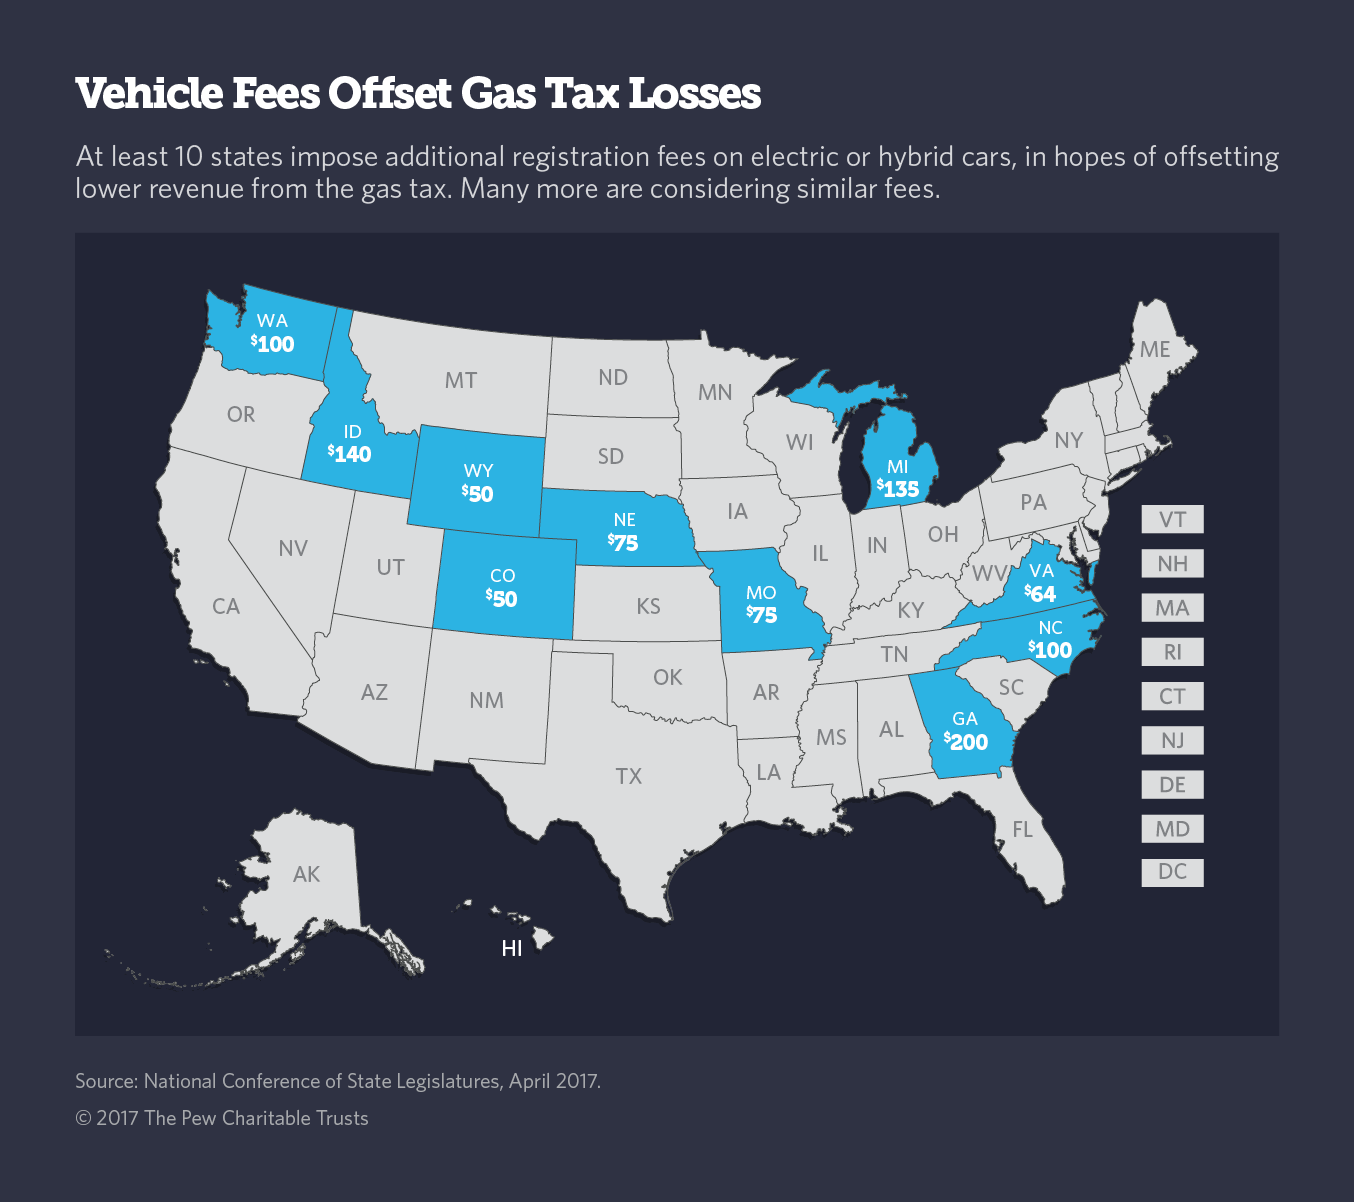 This Year Some 27 States Have Considered Increasing Fees On Electric Hybrid And Other Vehicles Ed By Alternative Fuels Such As Liquefied Natural Gas